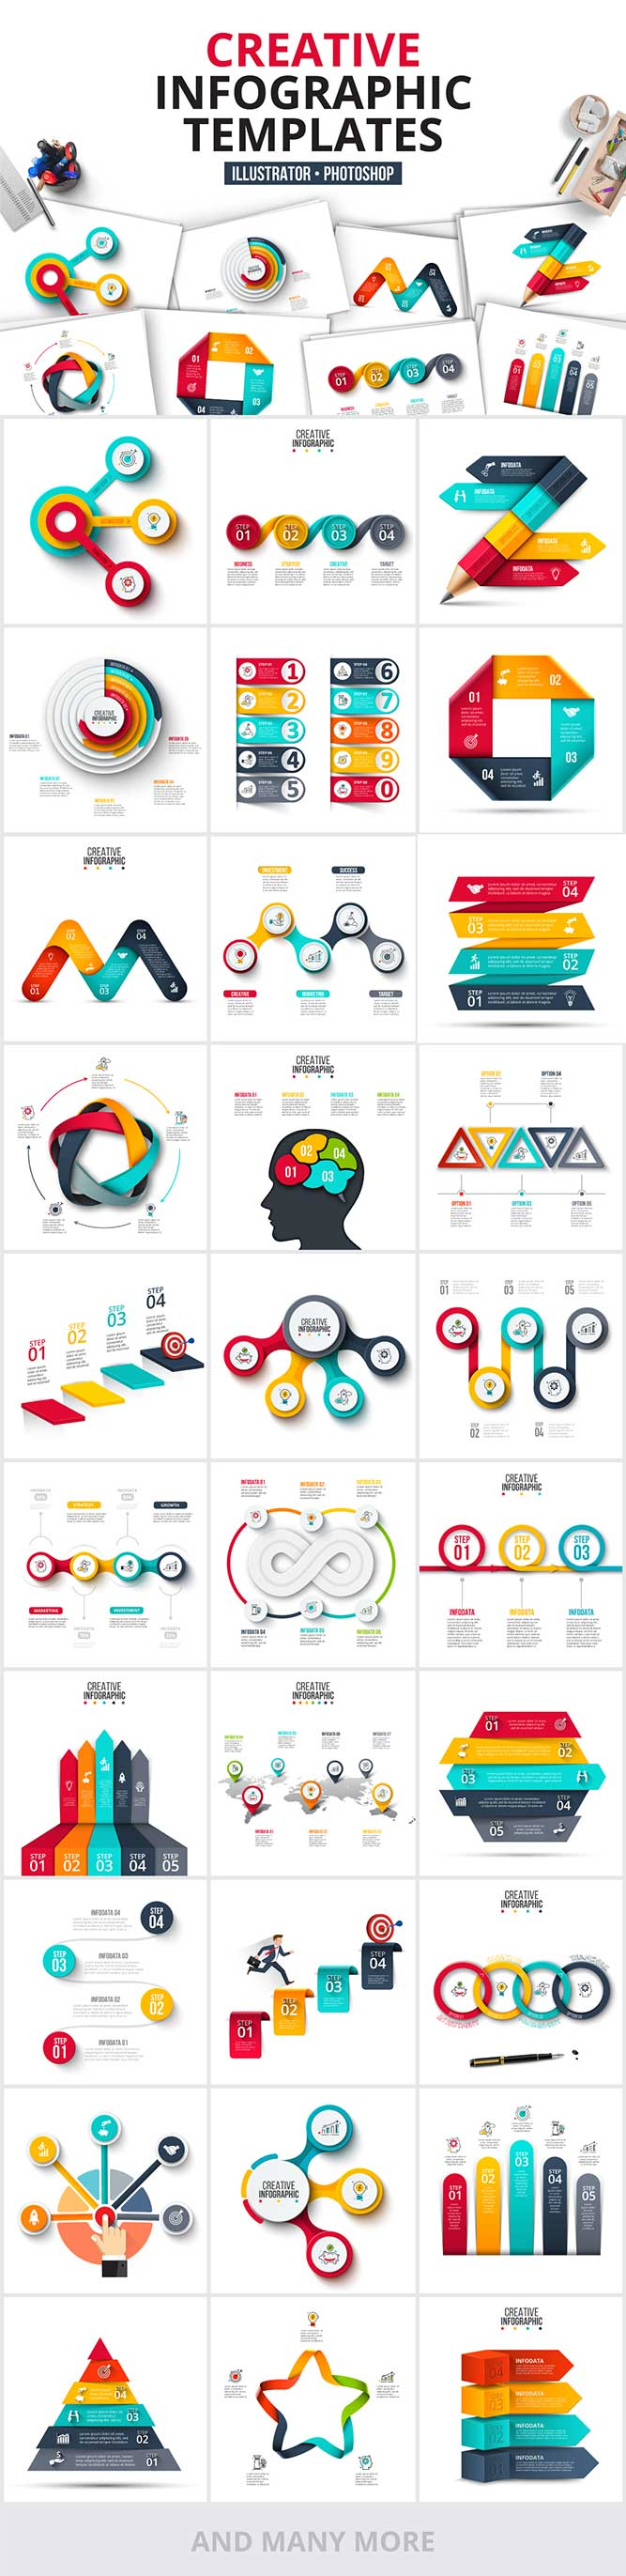 1200 Interactive Infographic Templates- 02_Creative